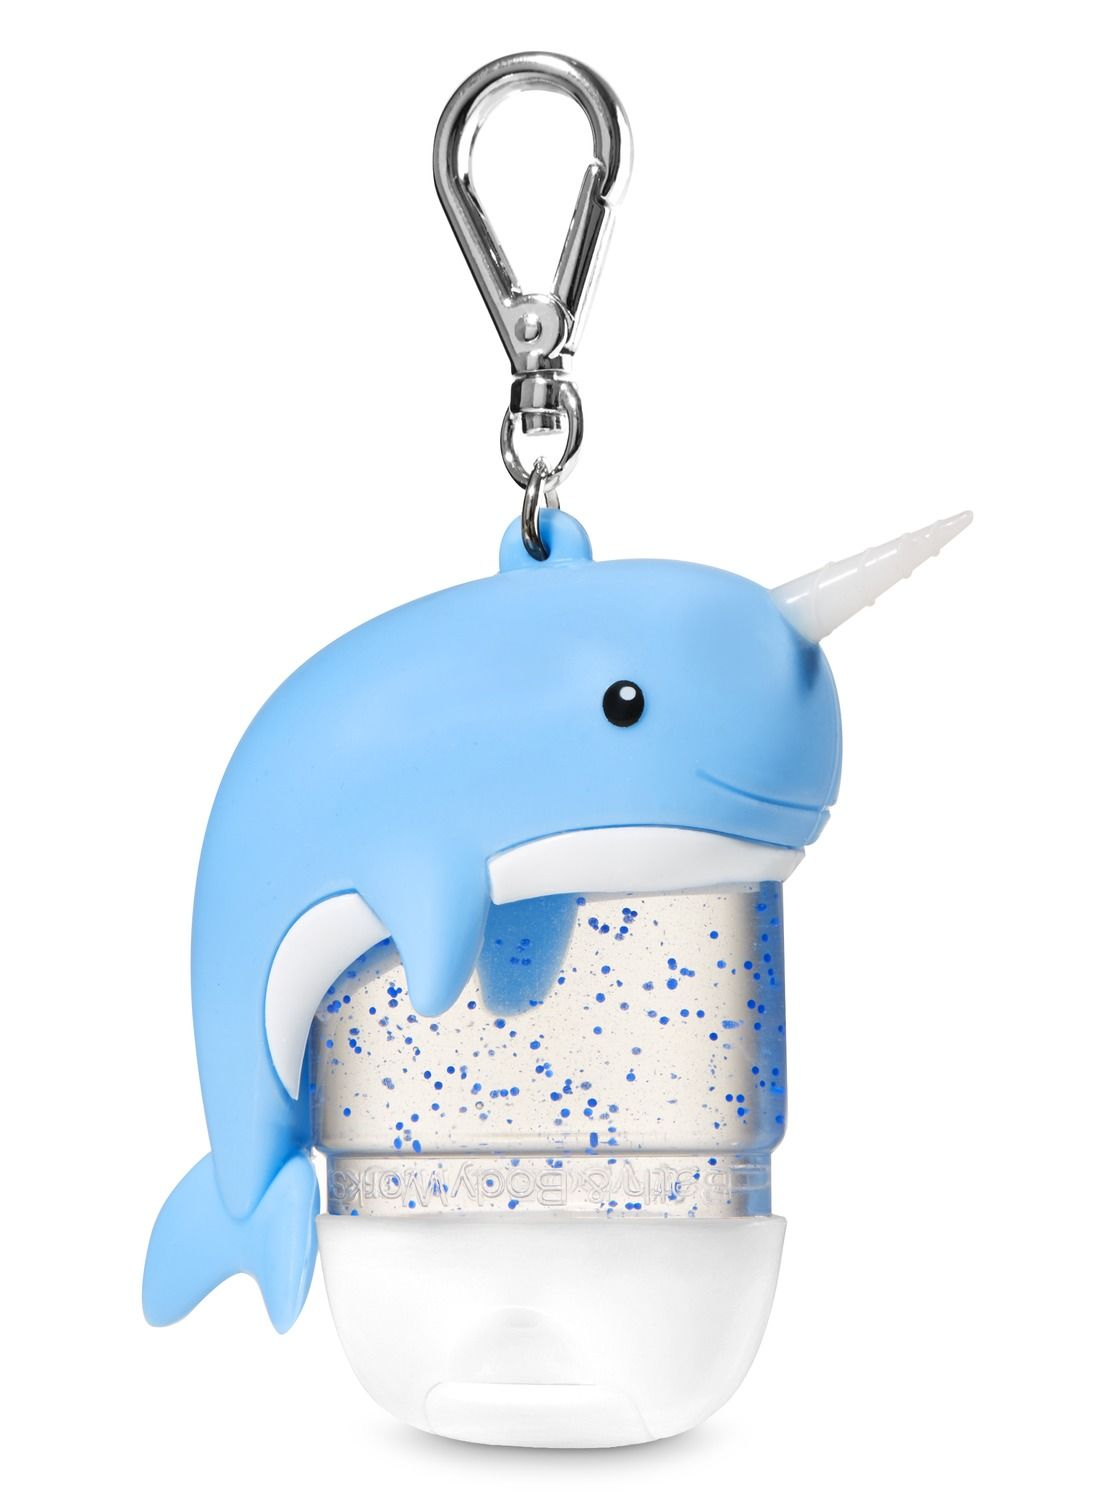 Narwhal Open Tab Hand Sanitizer Hand Sanitizer Crafty Machine